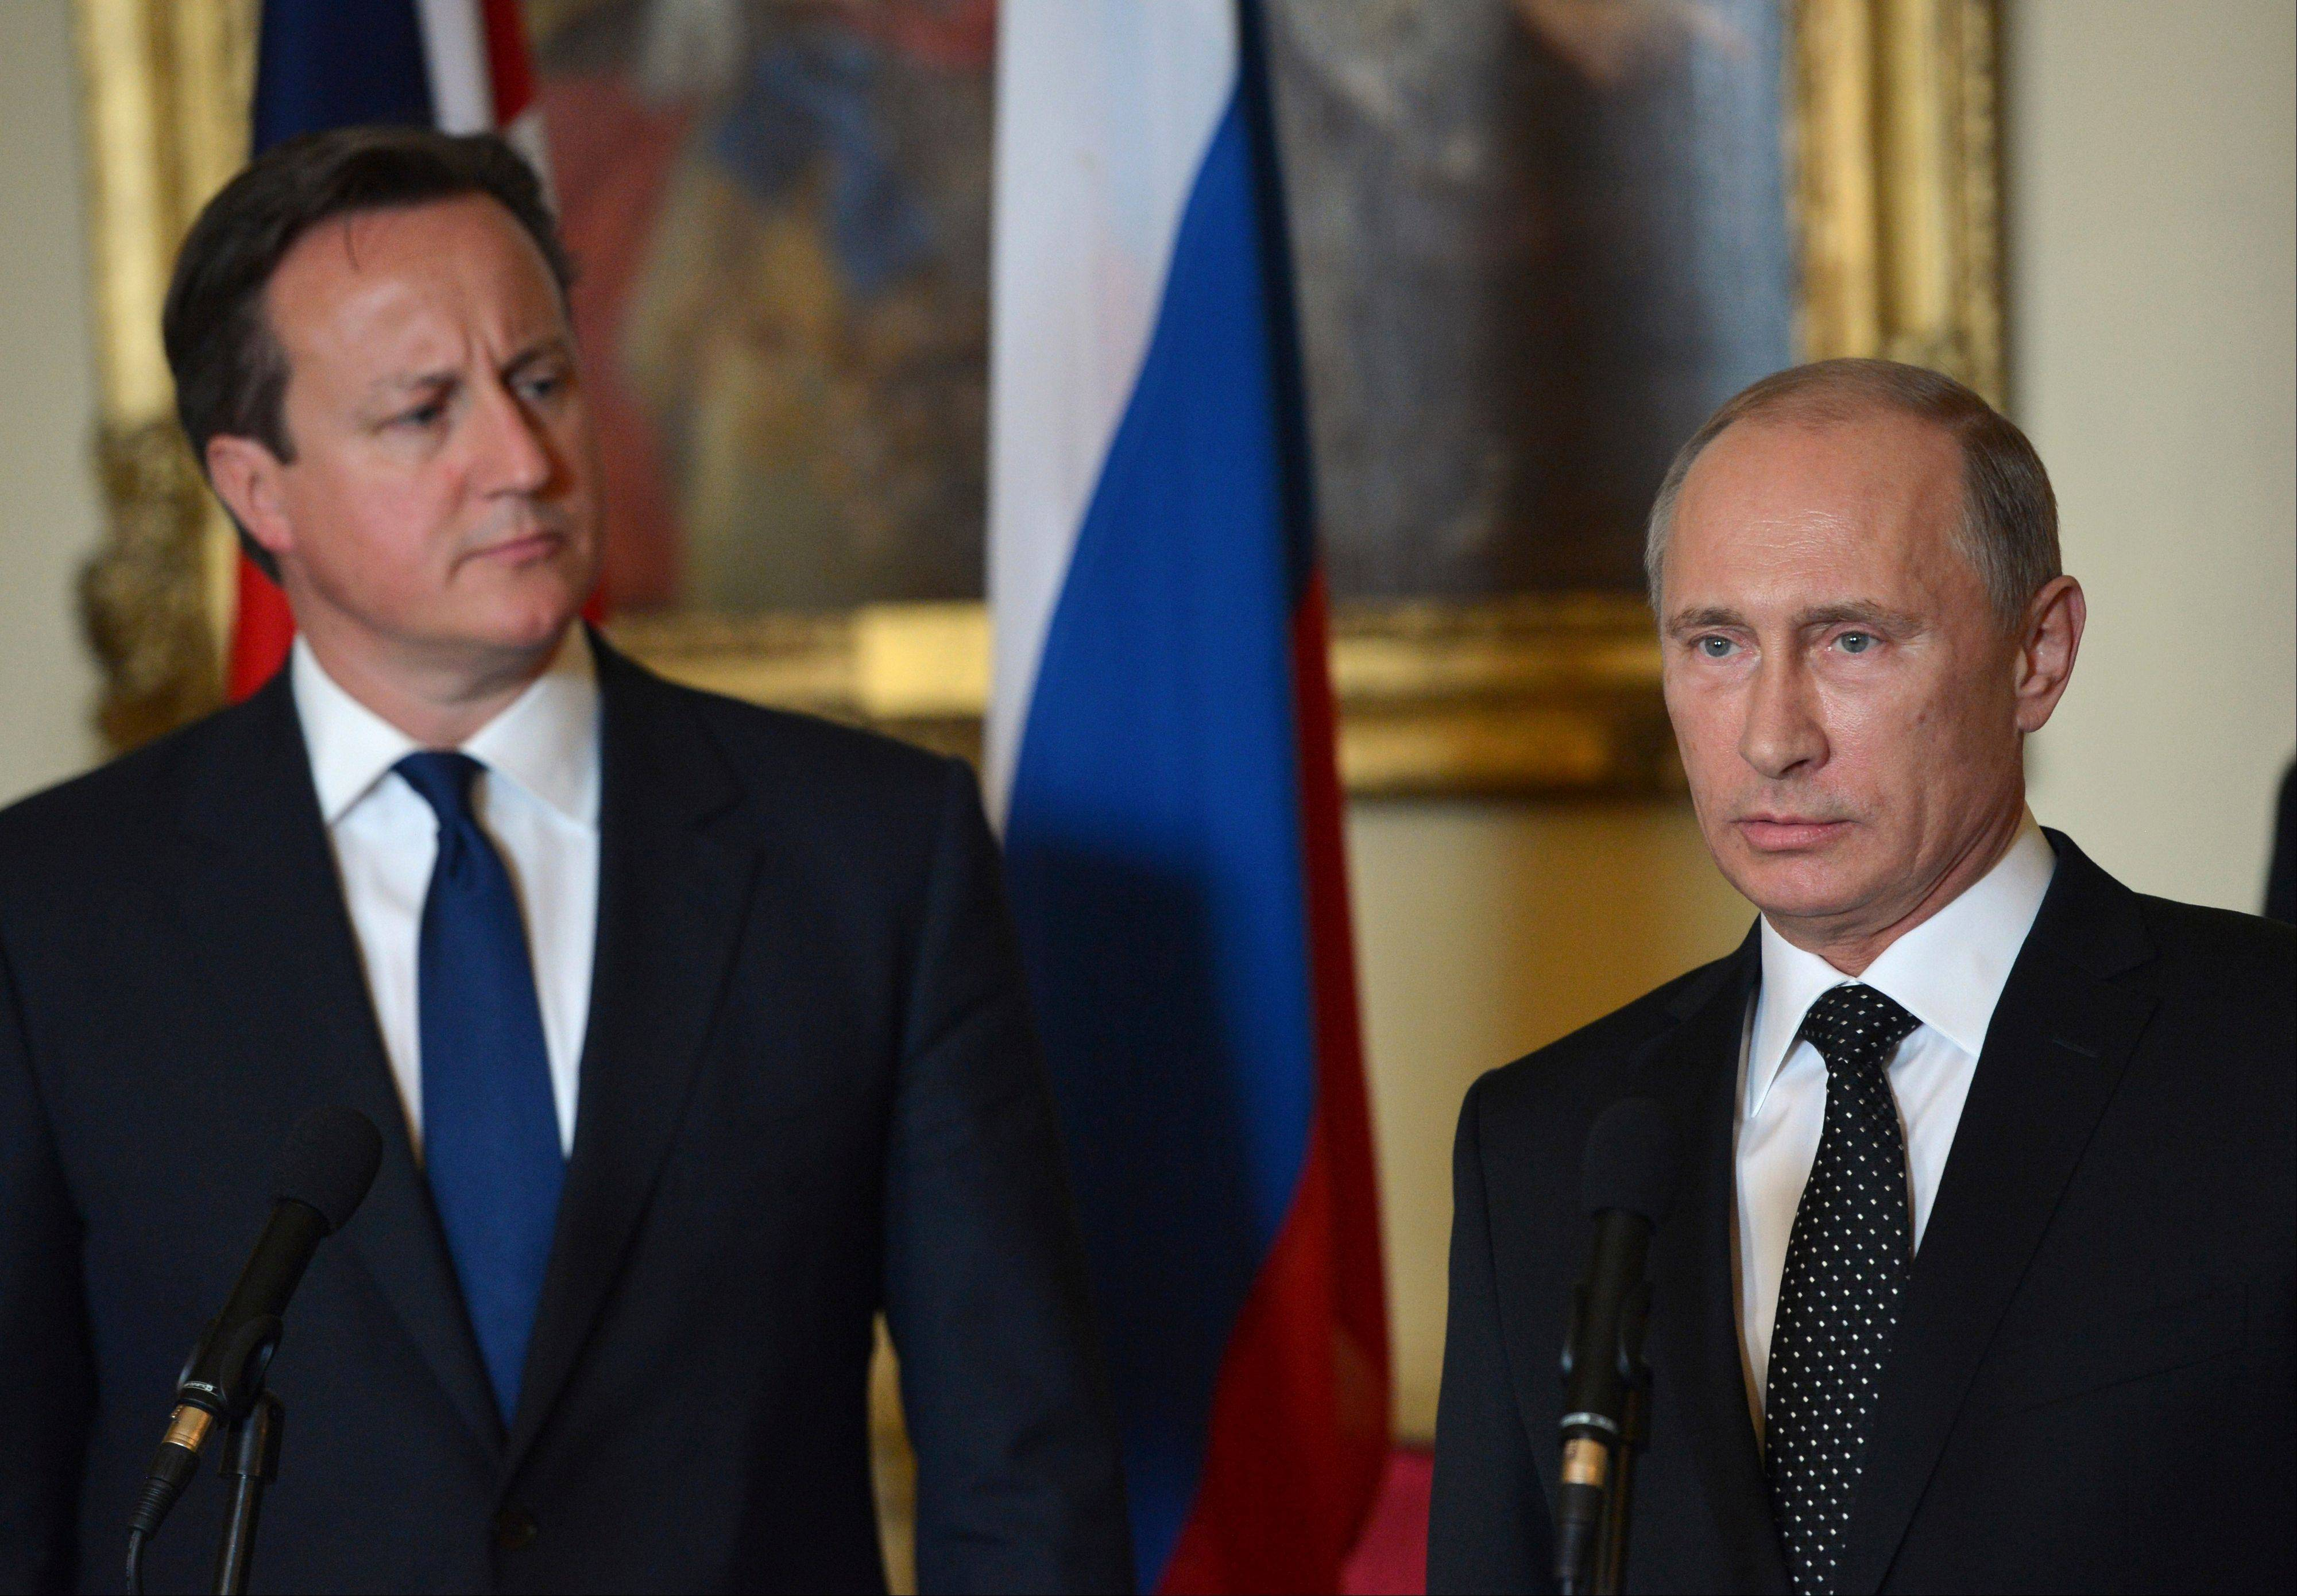 British Prime Minister David Cameron, left, stands with Russian President Vladimir Putin during a press conference at 10 Downing Street in London, Sunday. Cameron had talks with Russian President Putin on the Syrian crisis amid fears that differences between Moscow and the West are pushing the two sides toward a new Cold War.